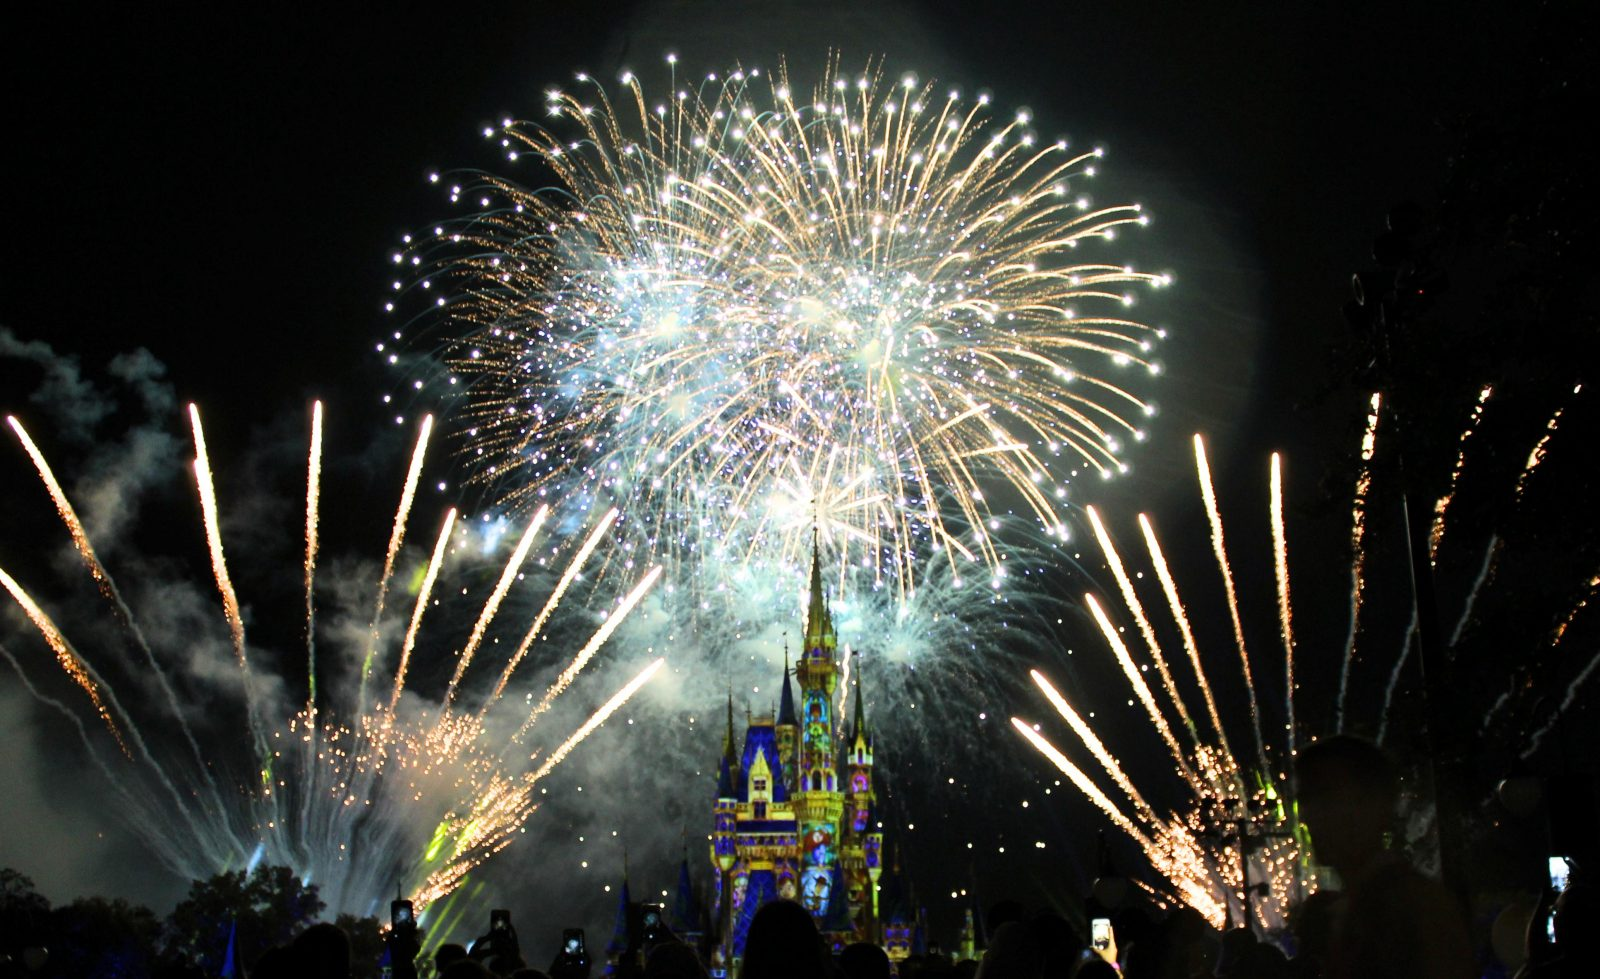 magic kingdom fireworks over cinderella castle